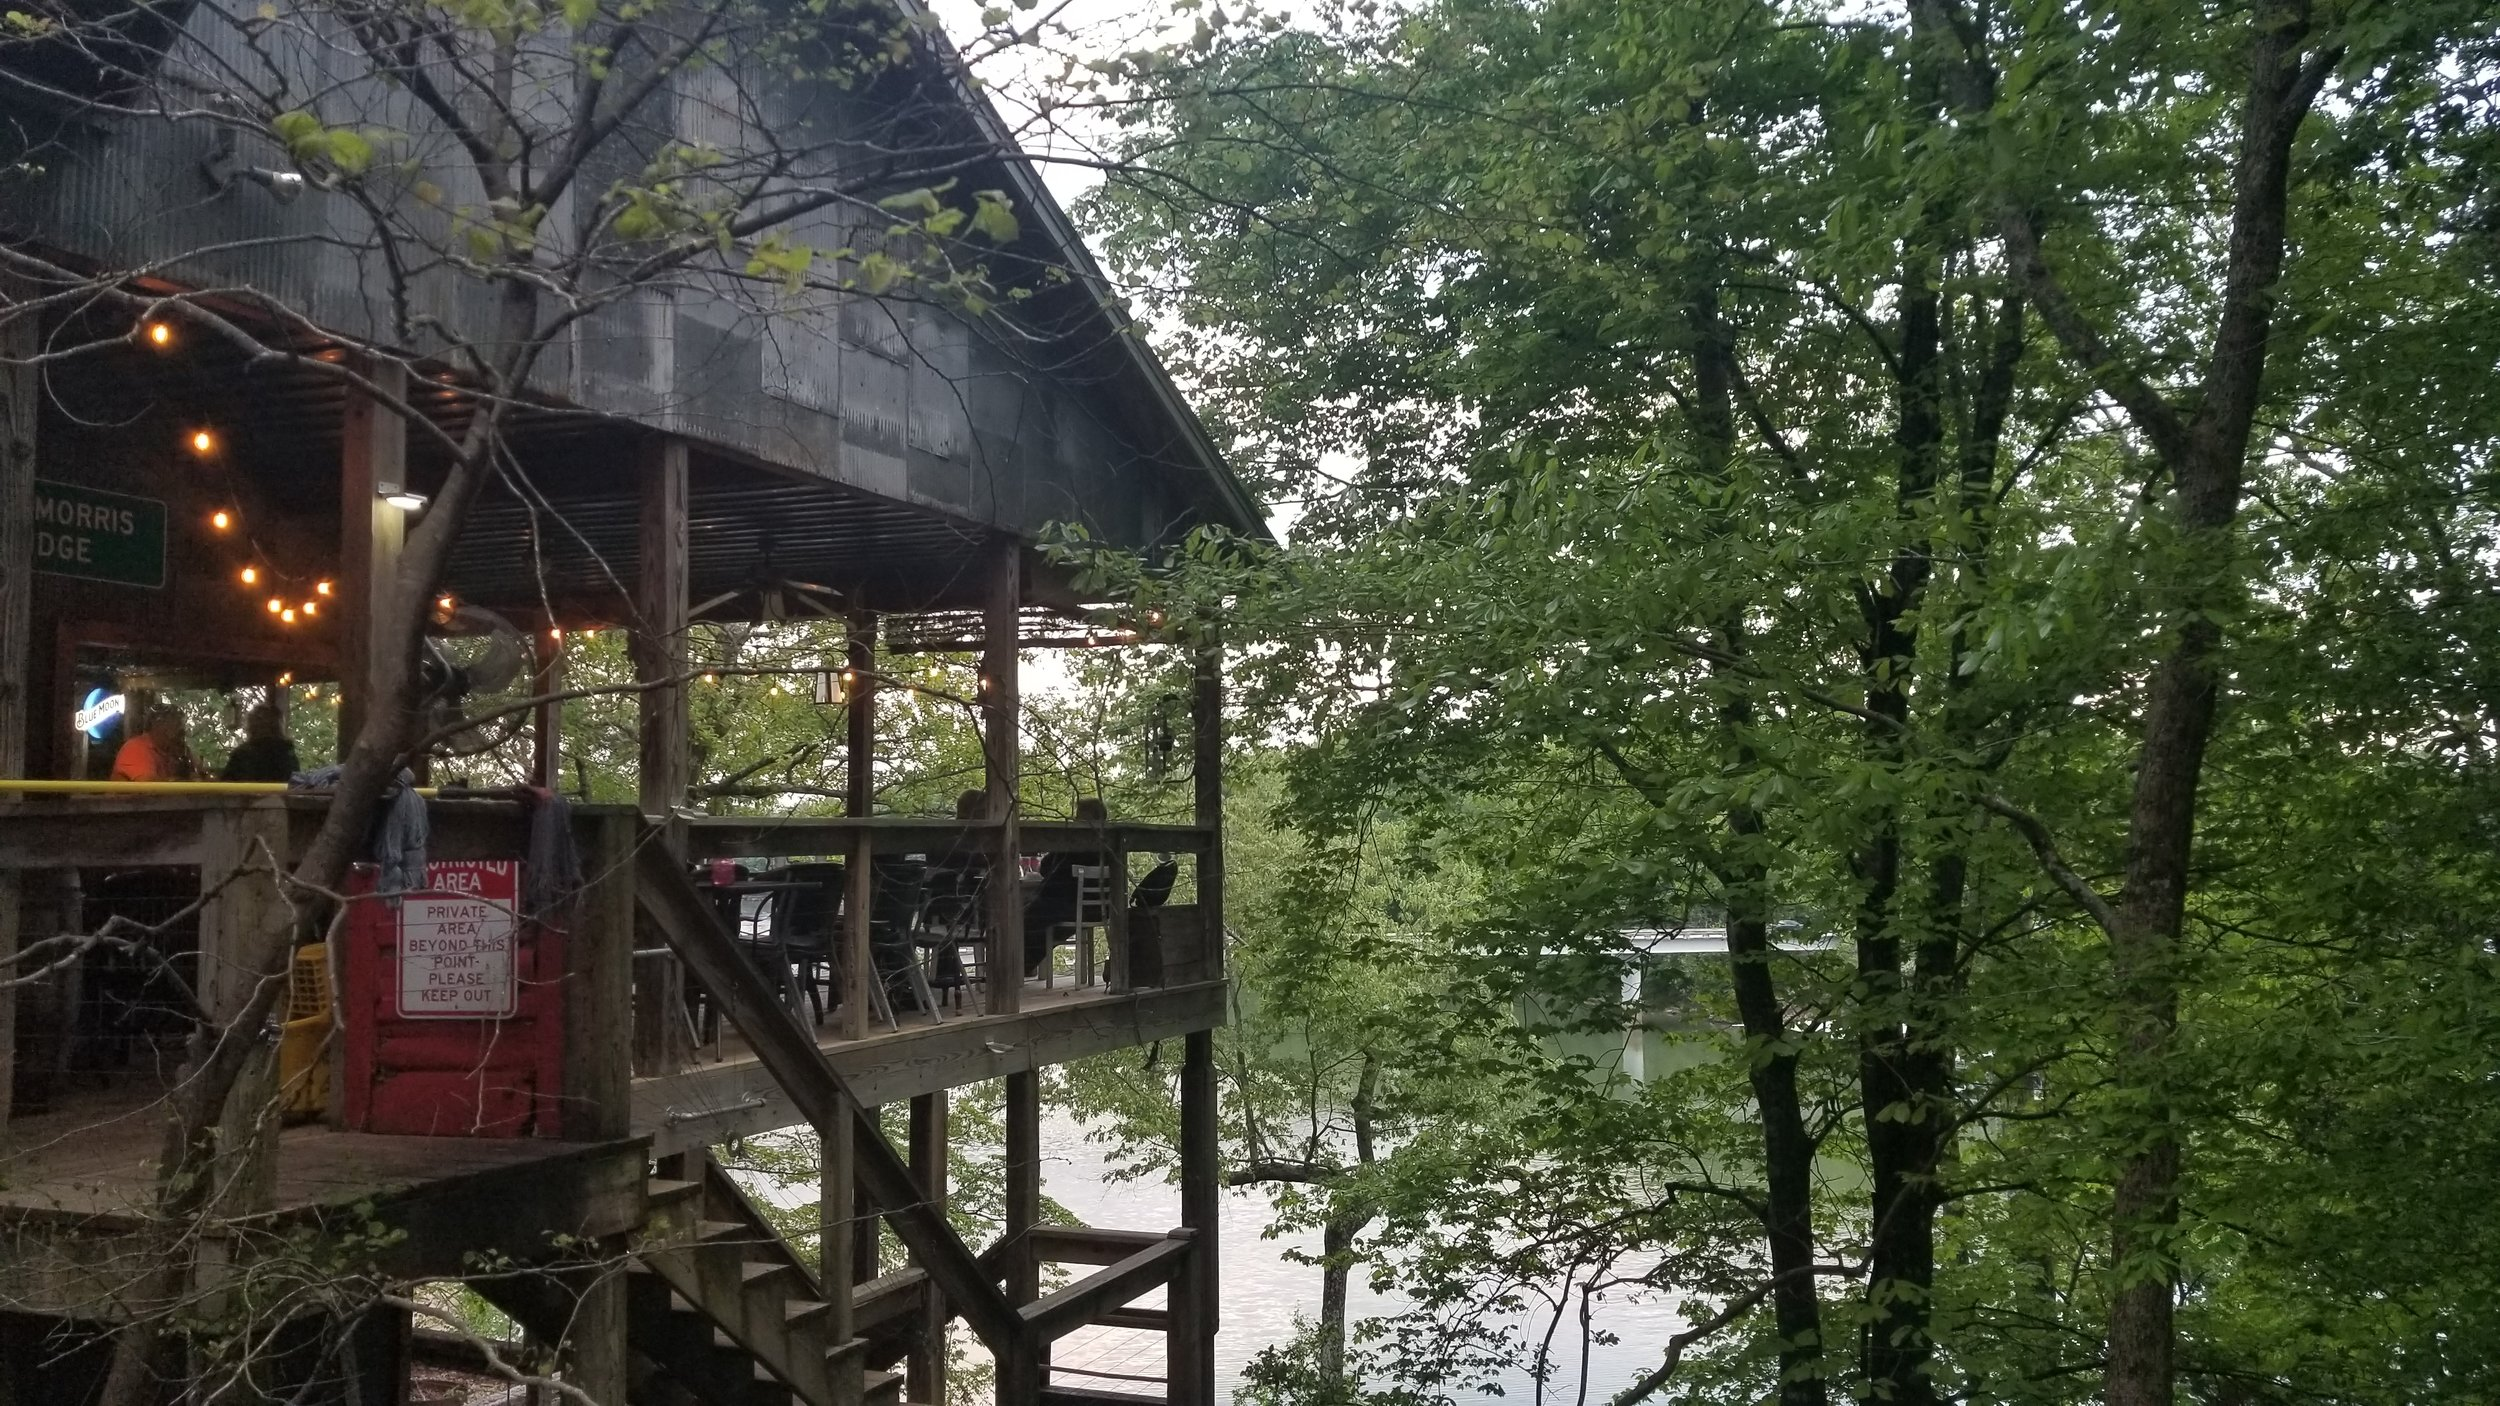 The Foglight Foodhouse near Rock Island State Park overlooks the river. The restaurant is known for its unique atmosphere, cajun food and creative culinary creations.